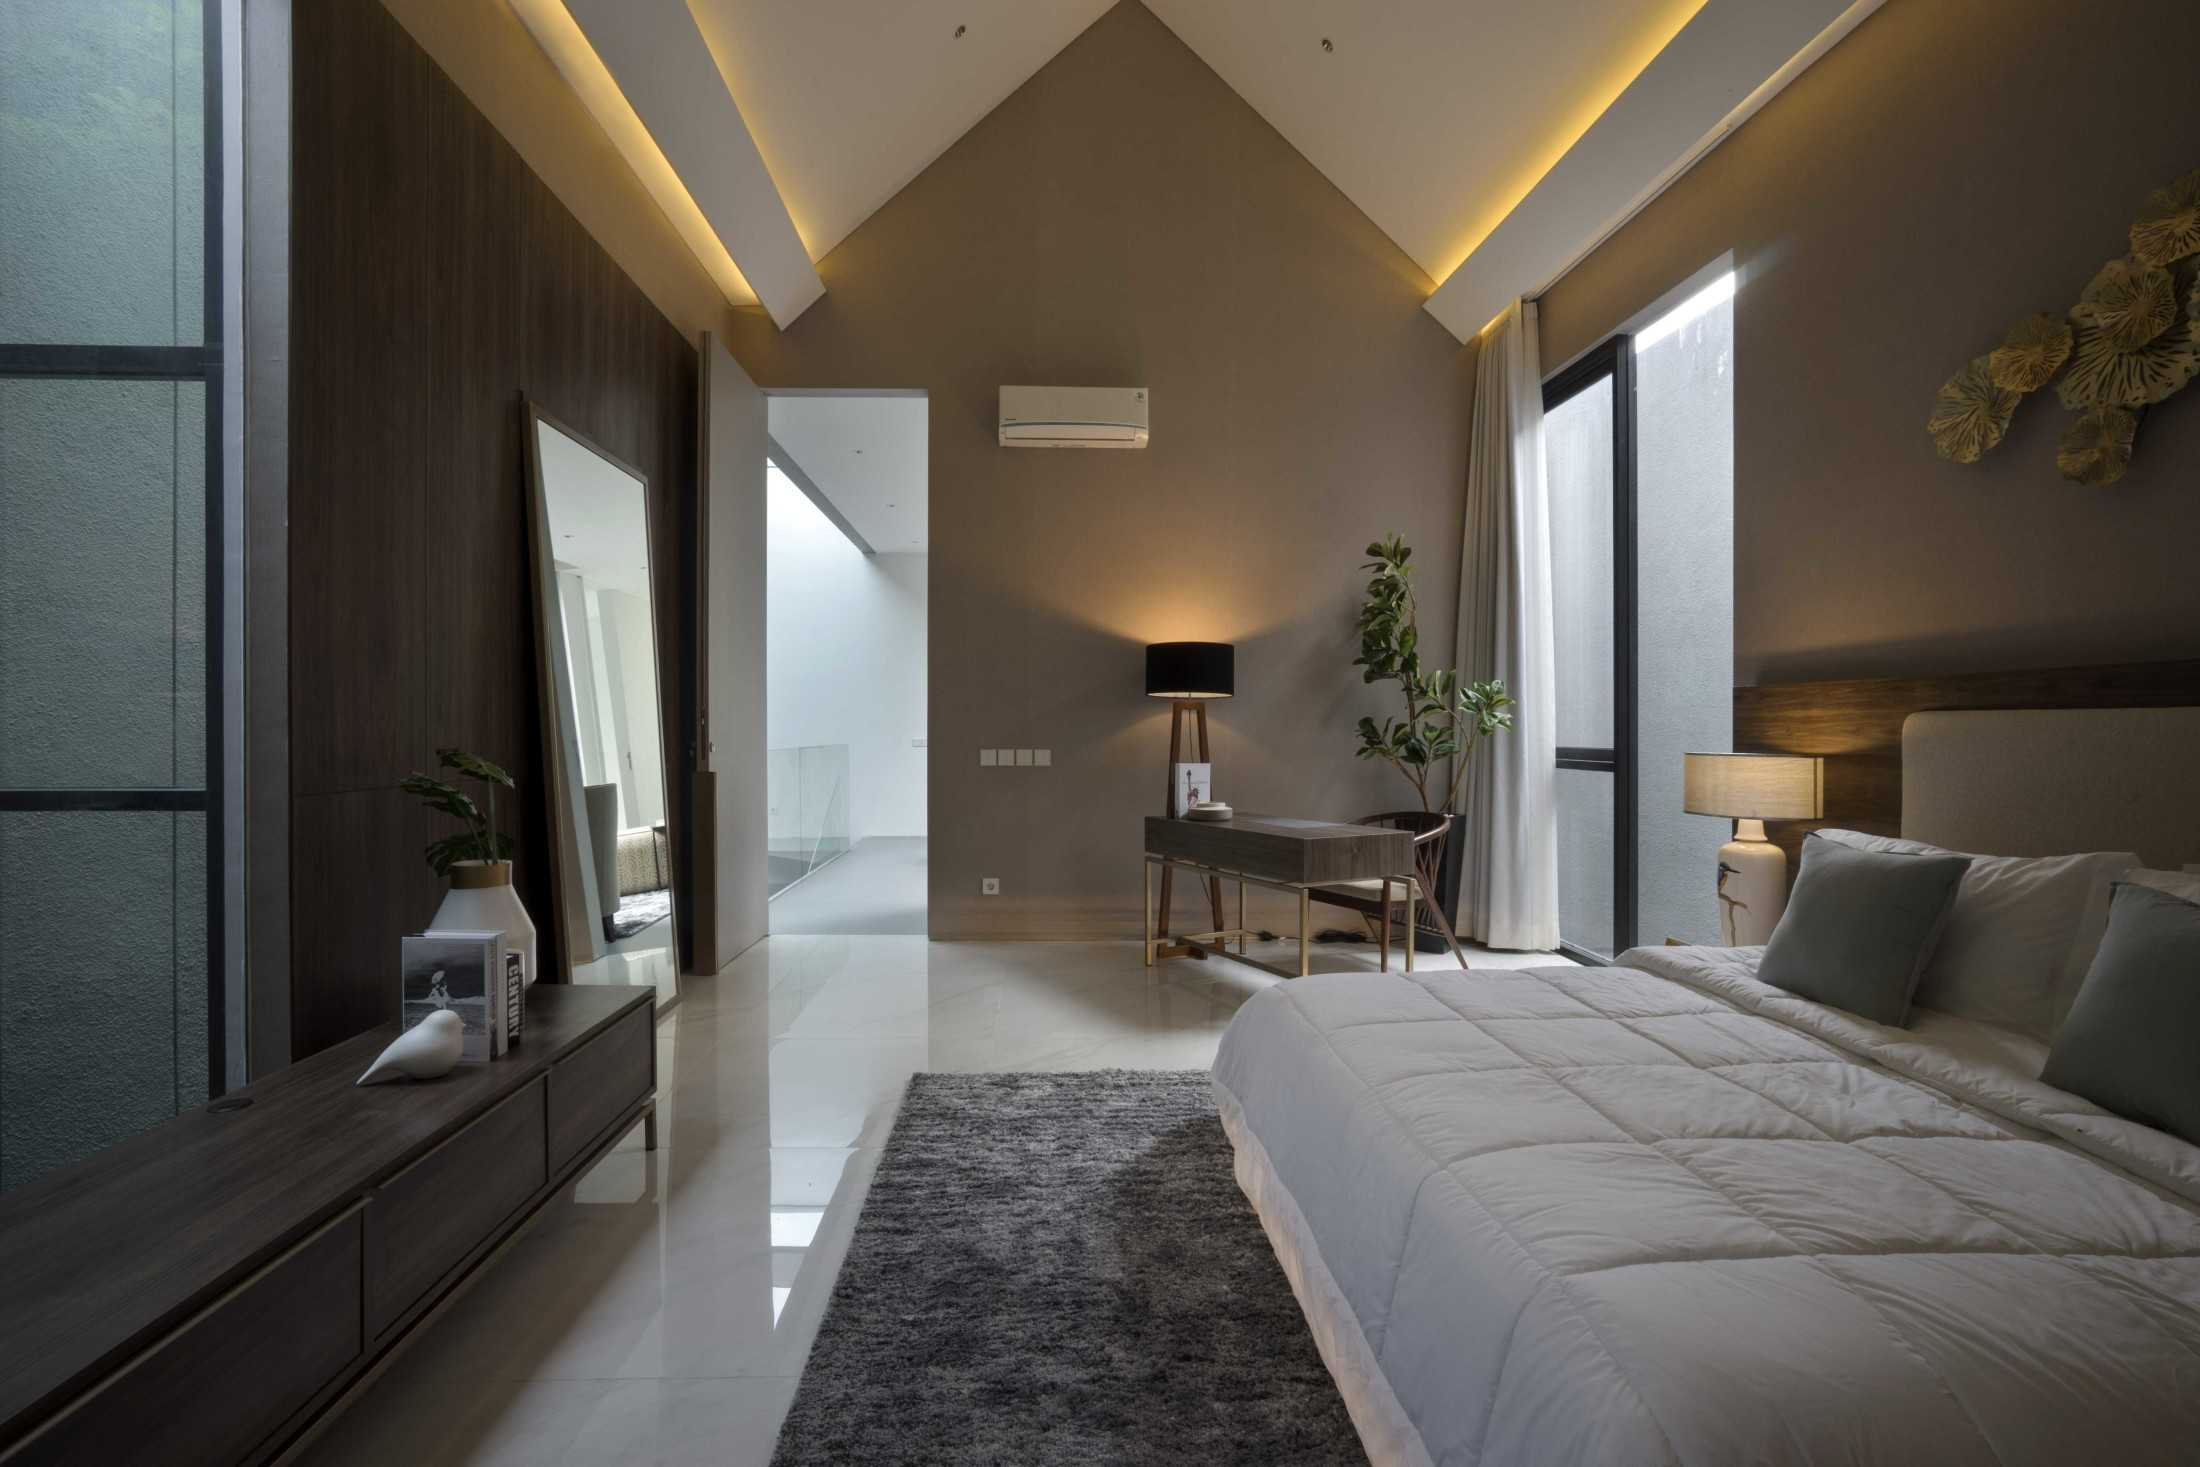 Simple Projects Architecture 'hhh' House Surabaya, Kota Sby, Jawa Timur, Indonesia  Simple-Projects-Architecture-Hhh-House  75076